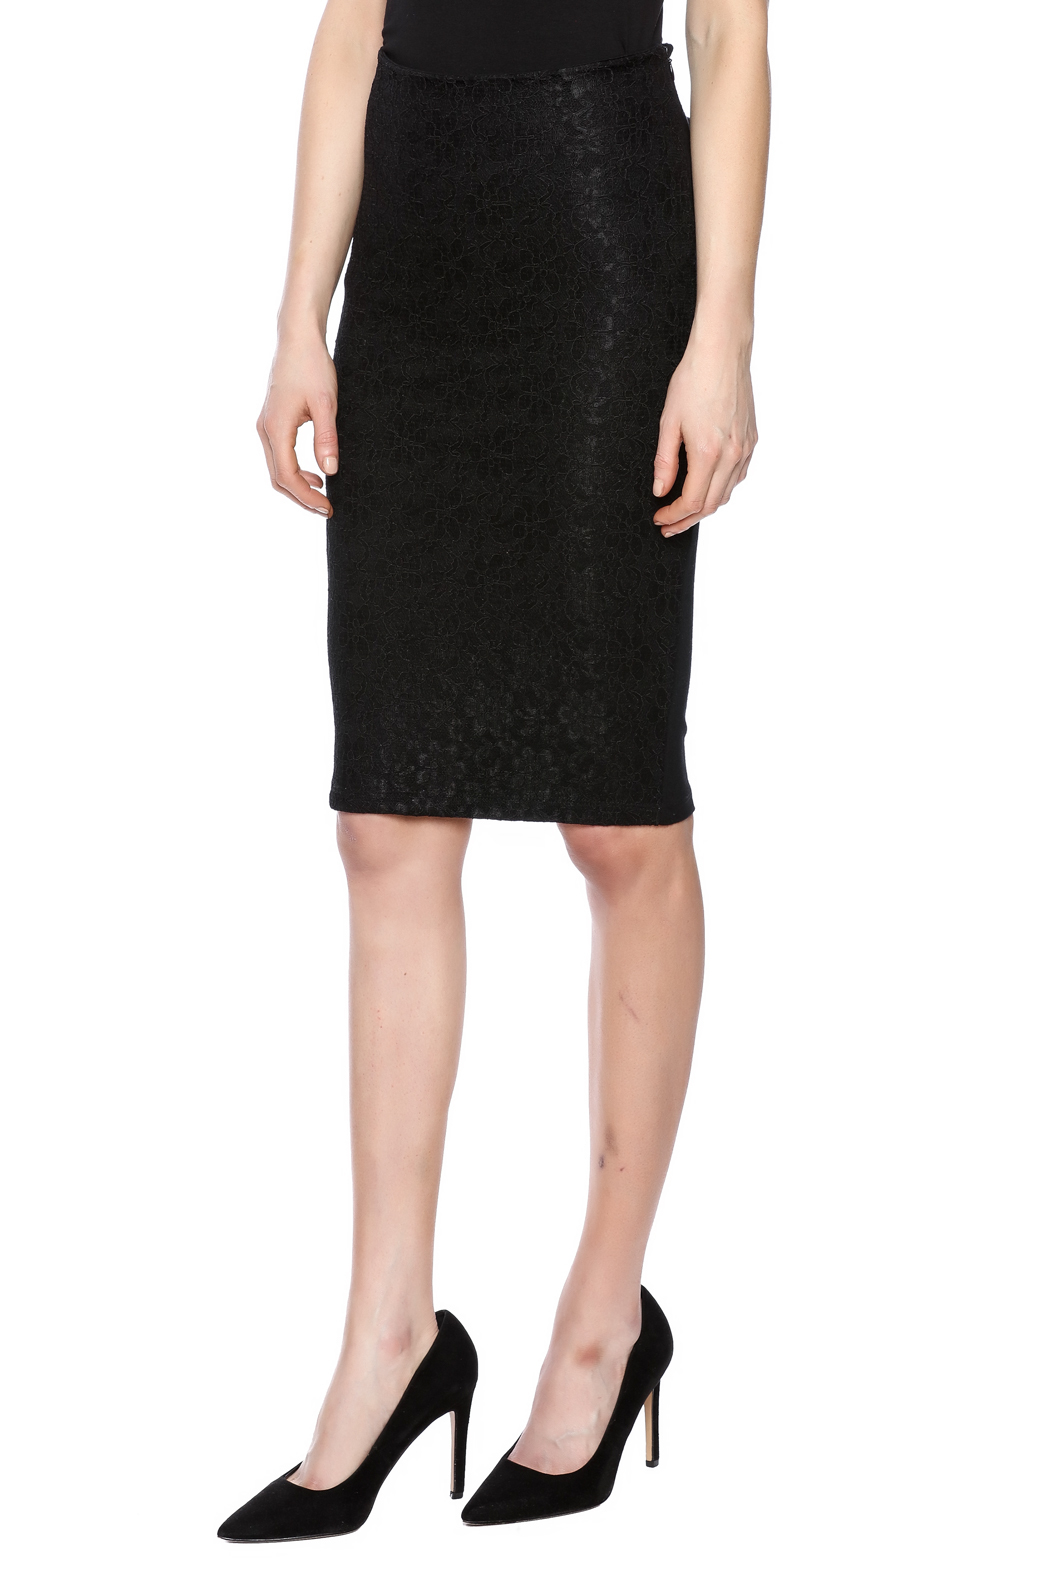 kikiriki pencil skirt from new jersey by covered